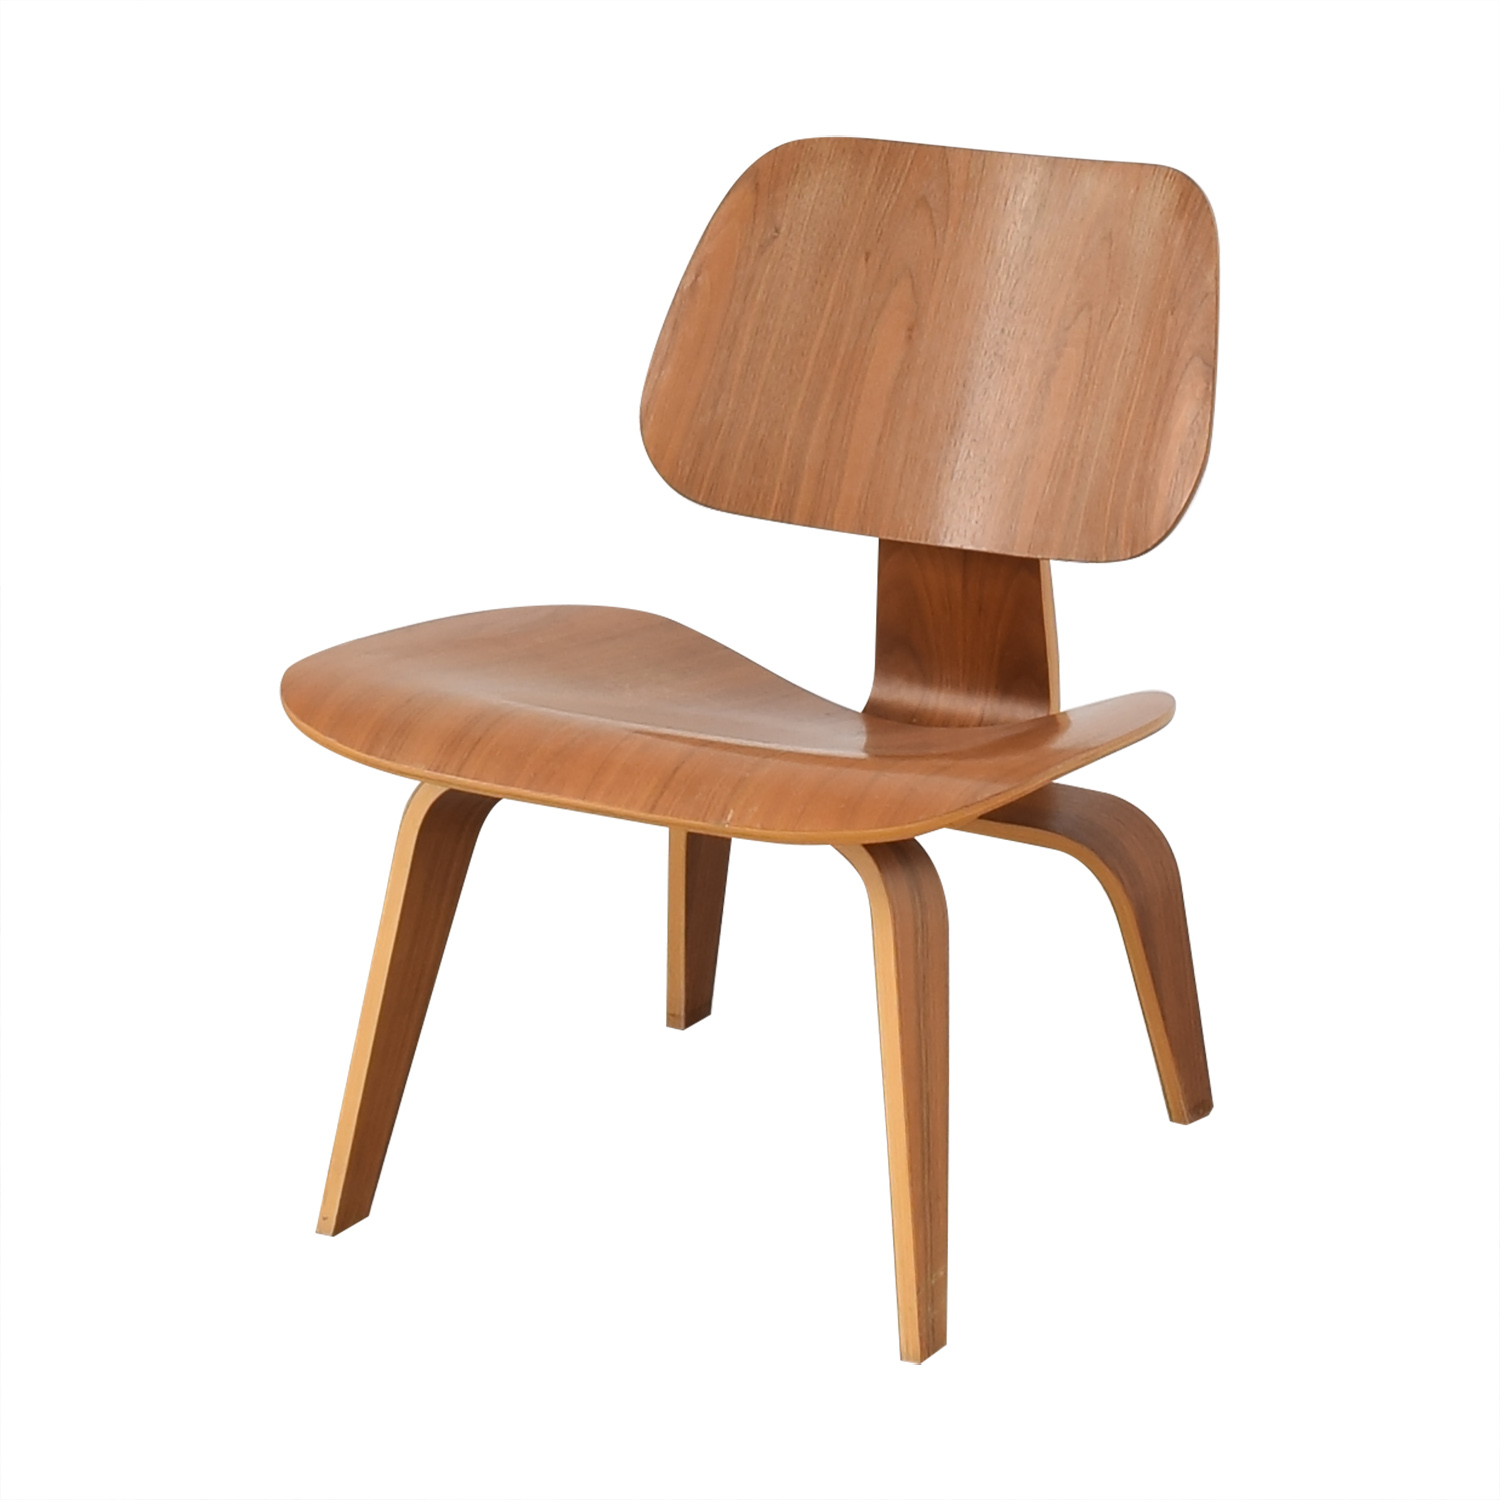 Herman Miller Eames Dining Chair / Chairs